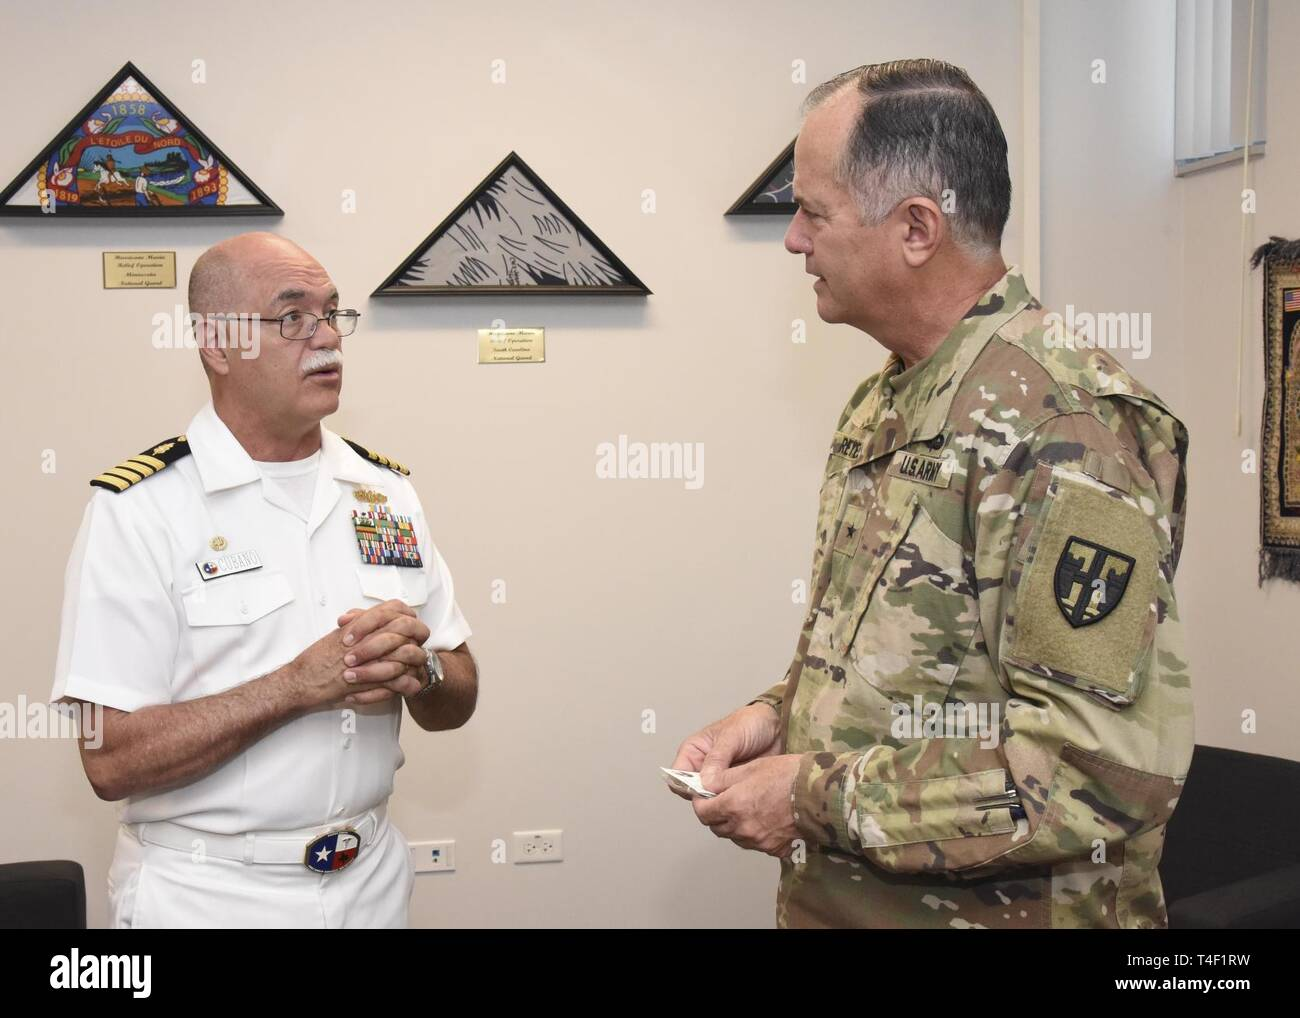 SAN JUAN, Puerto Rico. (April 8, 2019) U.S. Navy Capt. Miguel Cubano, commanding officer, Naval Health Clinic Corpus Christi, Texas, speaks with Puerto Rico National Guard Brig. Gen. Jose Reyes about Navy Week Puerto Rico.  Navy Weeks focus a variety of outreach assets, equipment and personnel on a single city for a week-long series of engagements with key influencers and organizations representing all sectors of the market.  During a Navy Week, 75-100 outreach events are coordinated with corporate, civic, government, education, media, veterans, community service and diversity organizations in - Stock Image